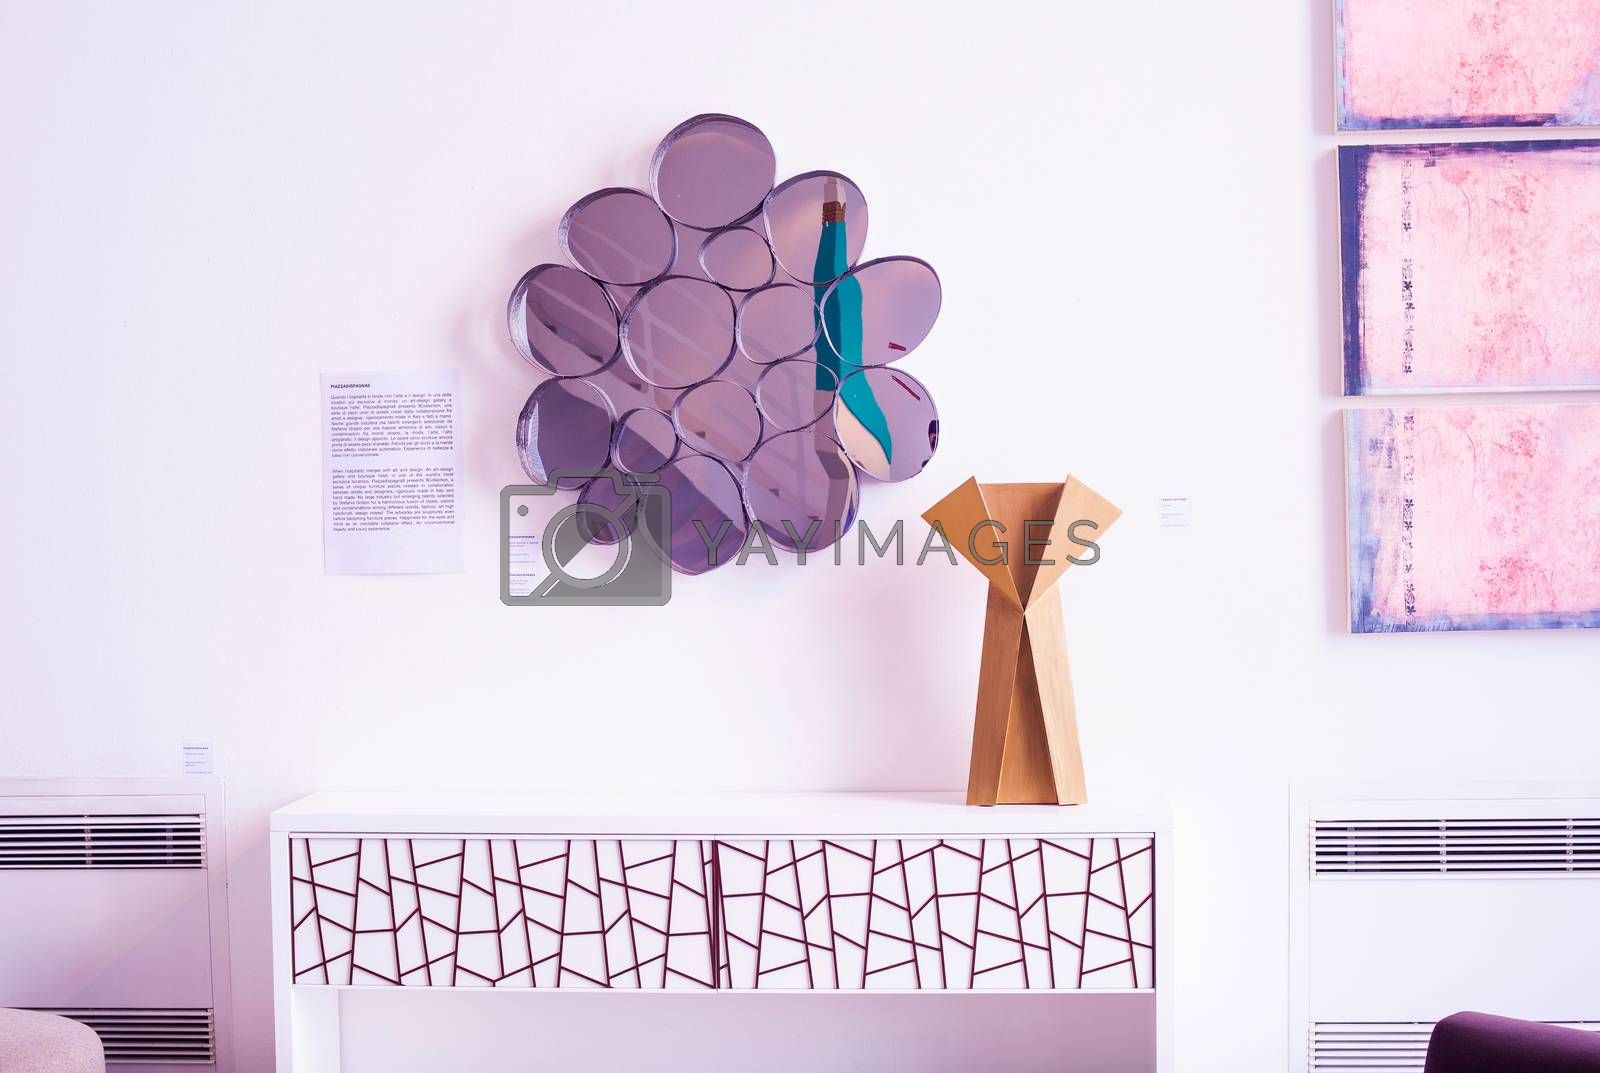 MILAN, ITALY - APRIL 16: Piazzadispagna9 present 9collection series of unique furniture pieces at Tortona space location of important events during Milan Design week on April 16, 2015